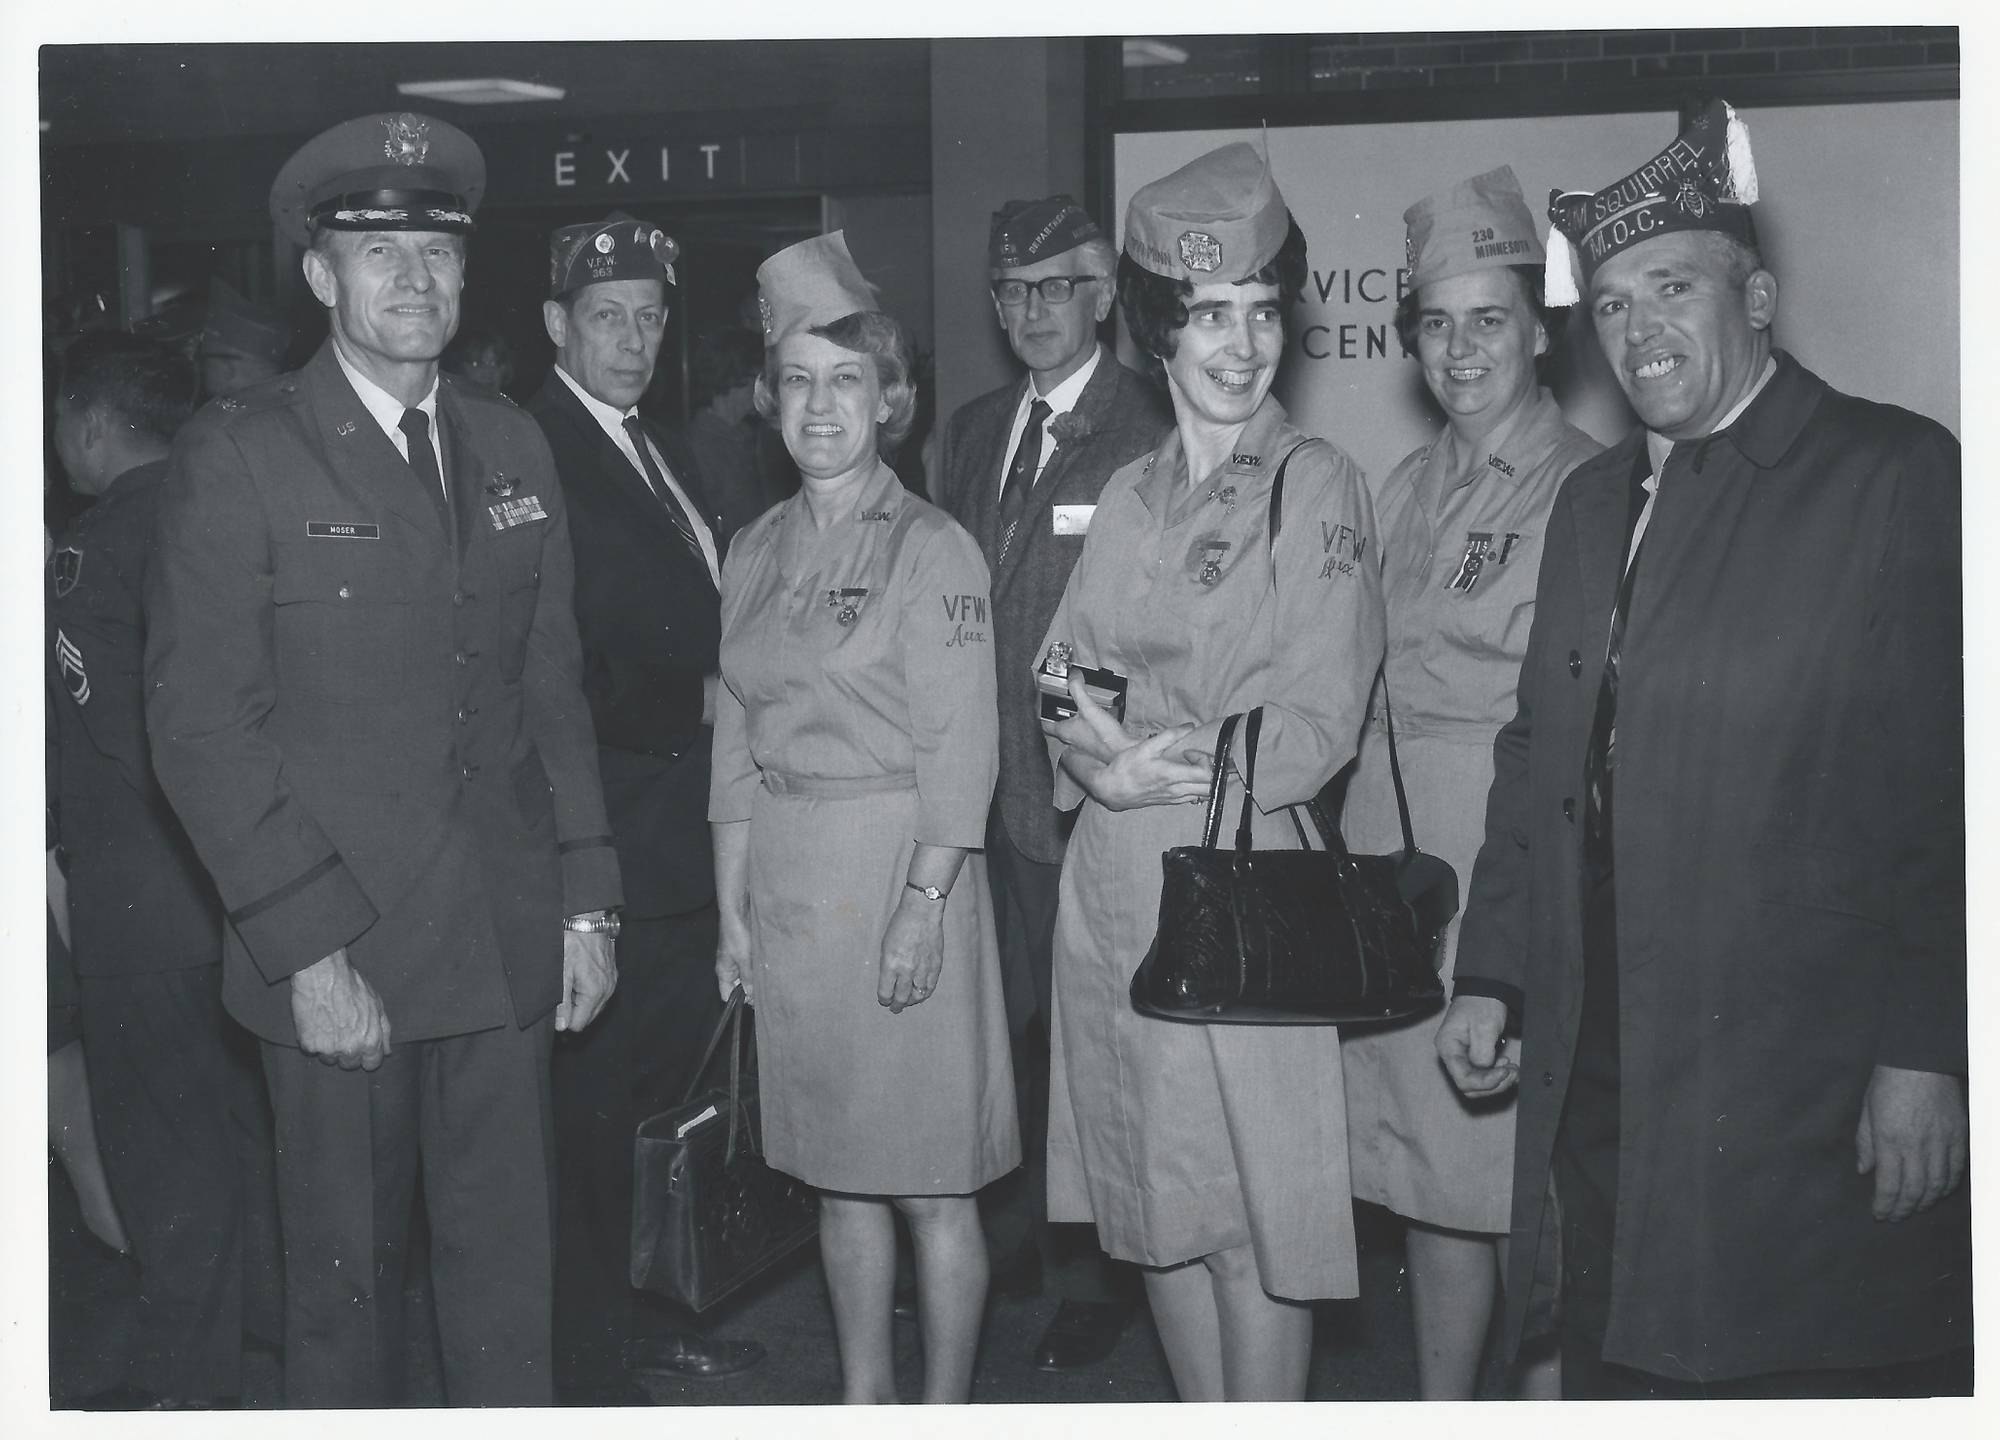 Older servicemen and servicewomen smiling for the camera.